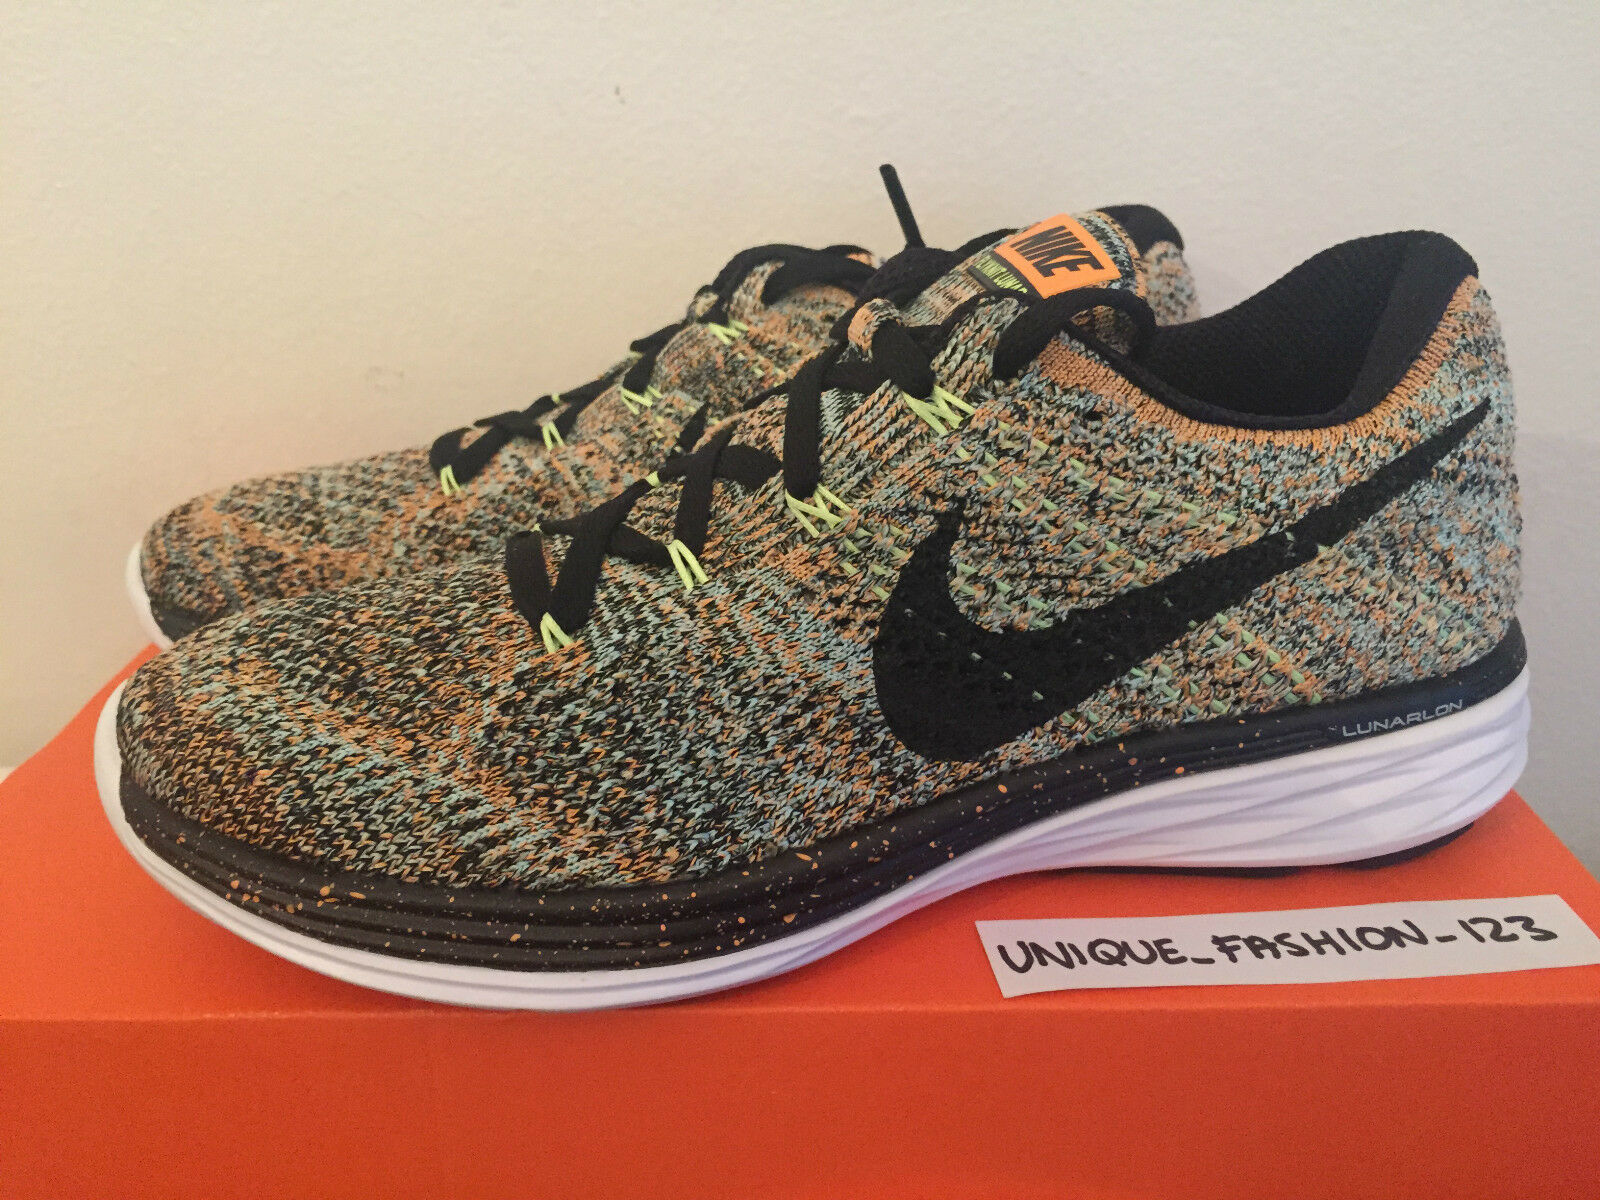 WMNS NIKE FLYKNIT LUNAR 3 3 3 BRIGHT CITRUS MULTI3.5 US 6 36.5 MIX 698182-800 ab01eb